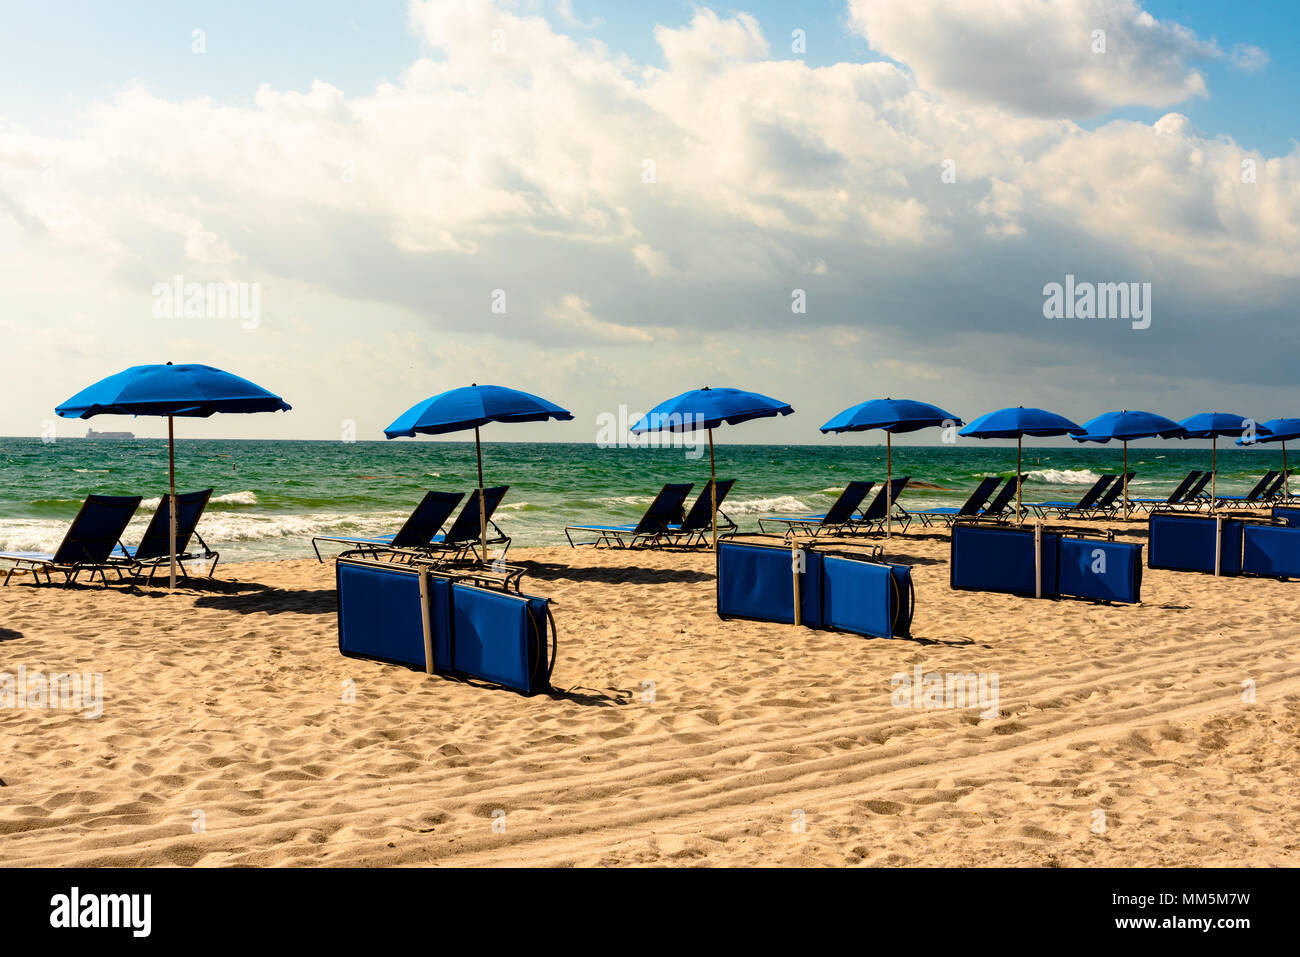 Blue lounge chairs and blue umbrellas line a Florida beach under blue skies. - Stock Image